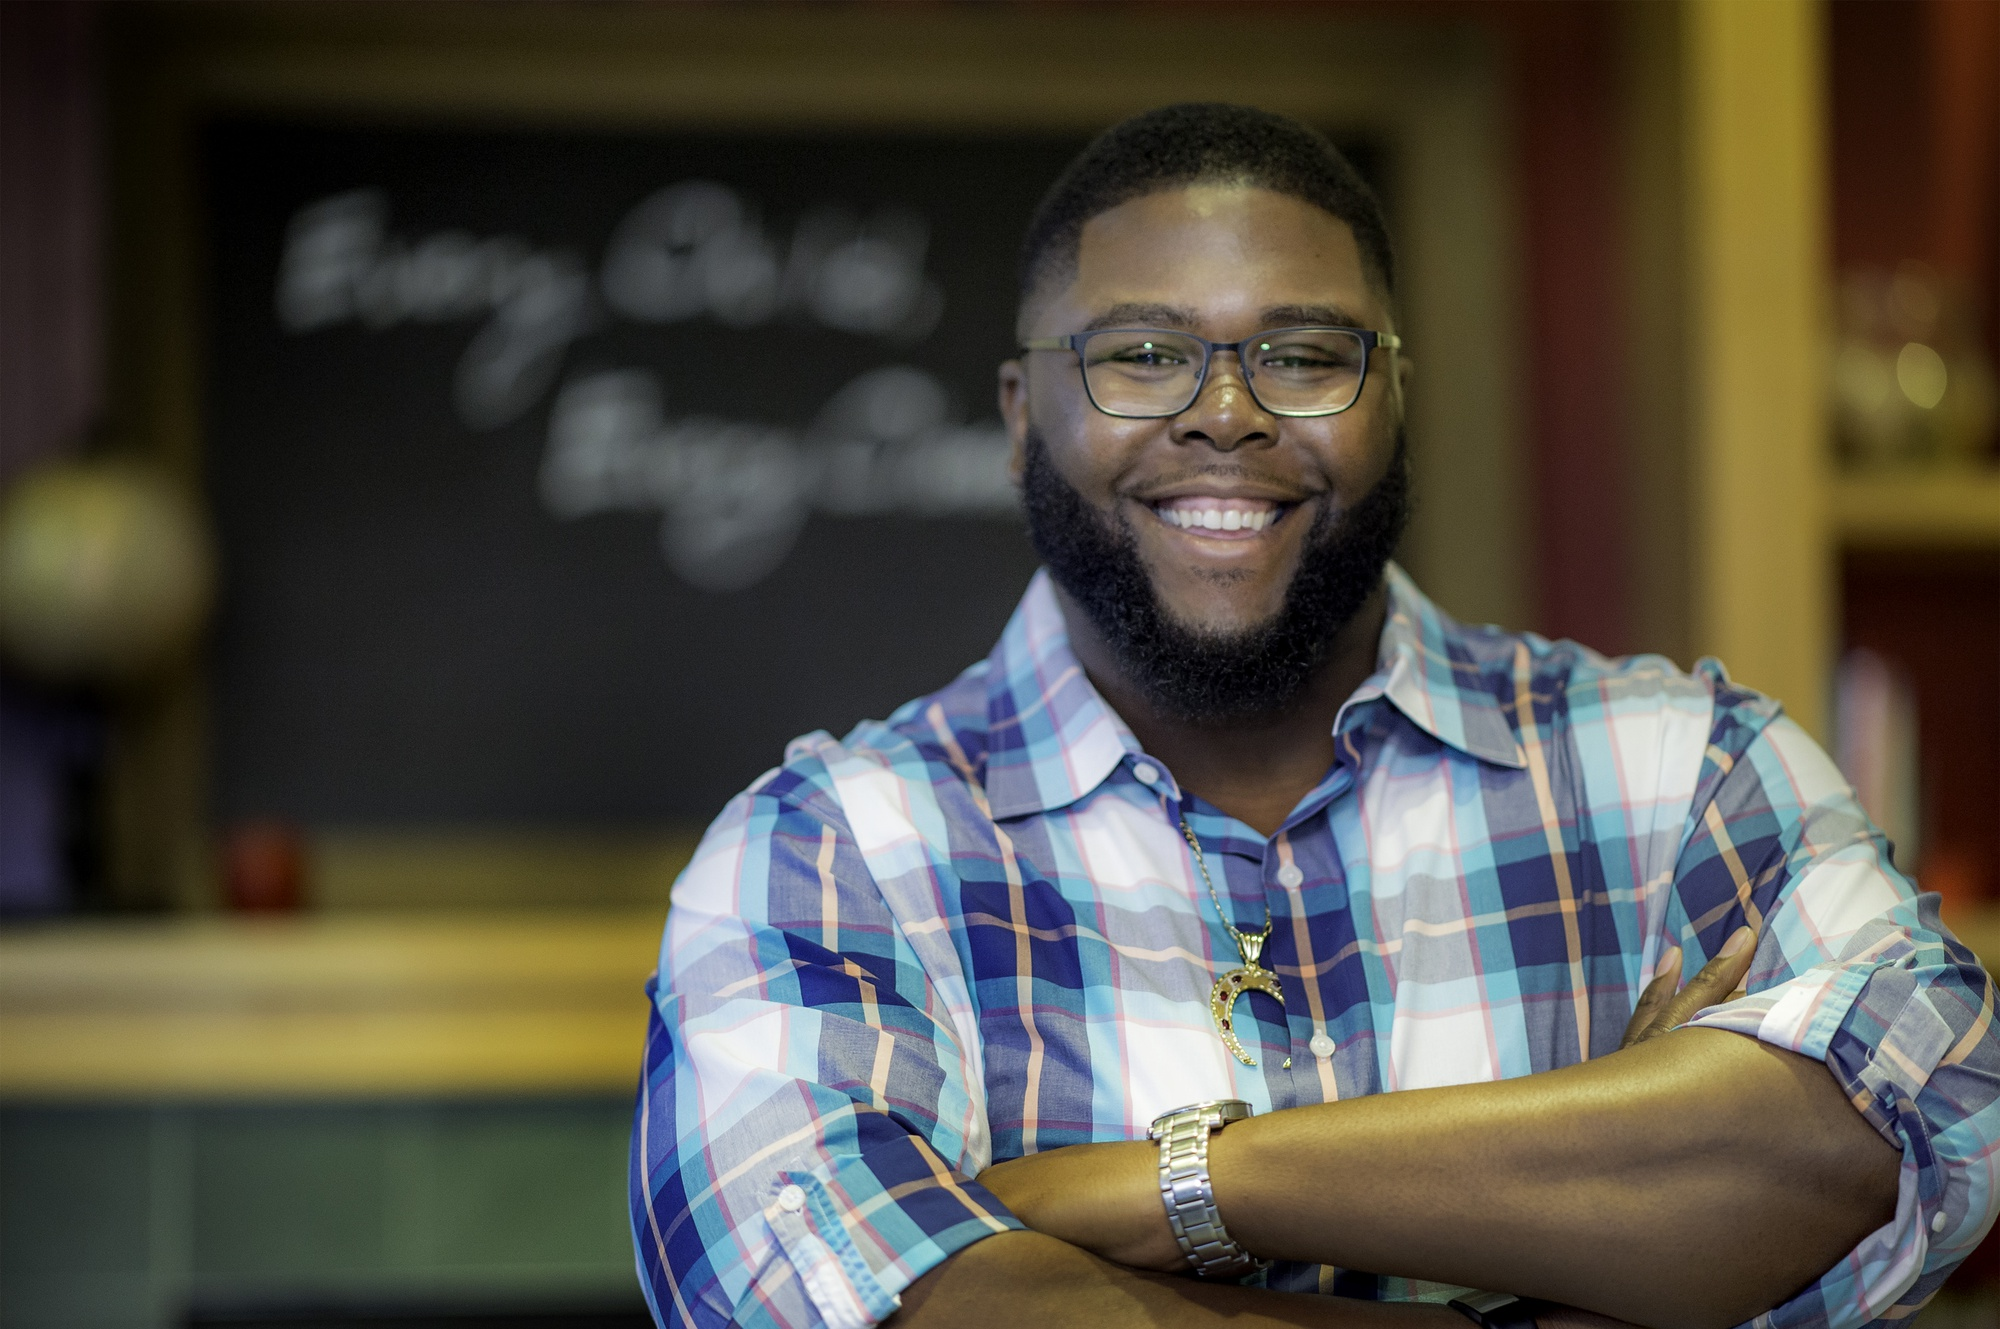 Anthony Jack, a junior fellow at the Harvard Society of Fellows and an Assistant Professor at the Harvard Graduate School of Education, recently published his first book, The Privileged Poor: How Elite Colleges are Failing Poor Students